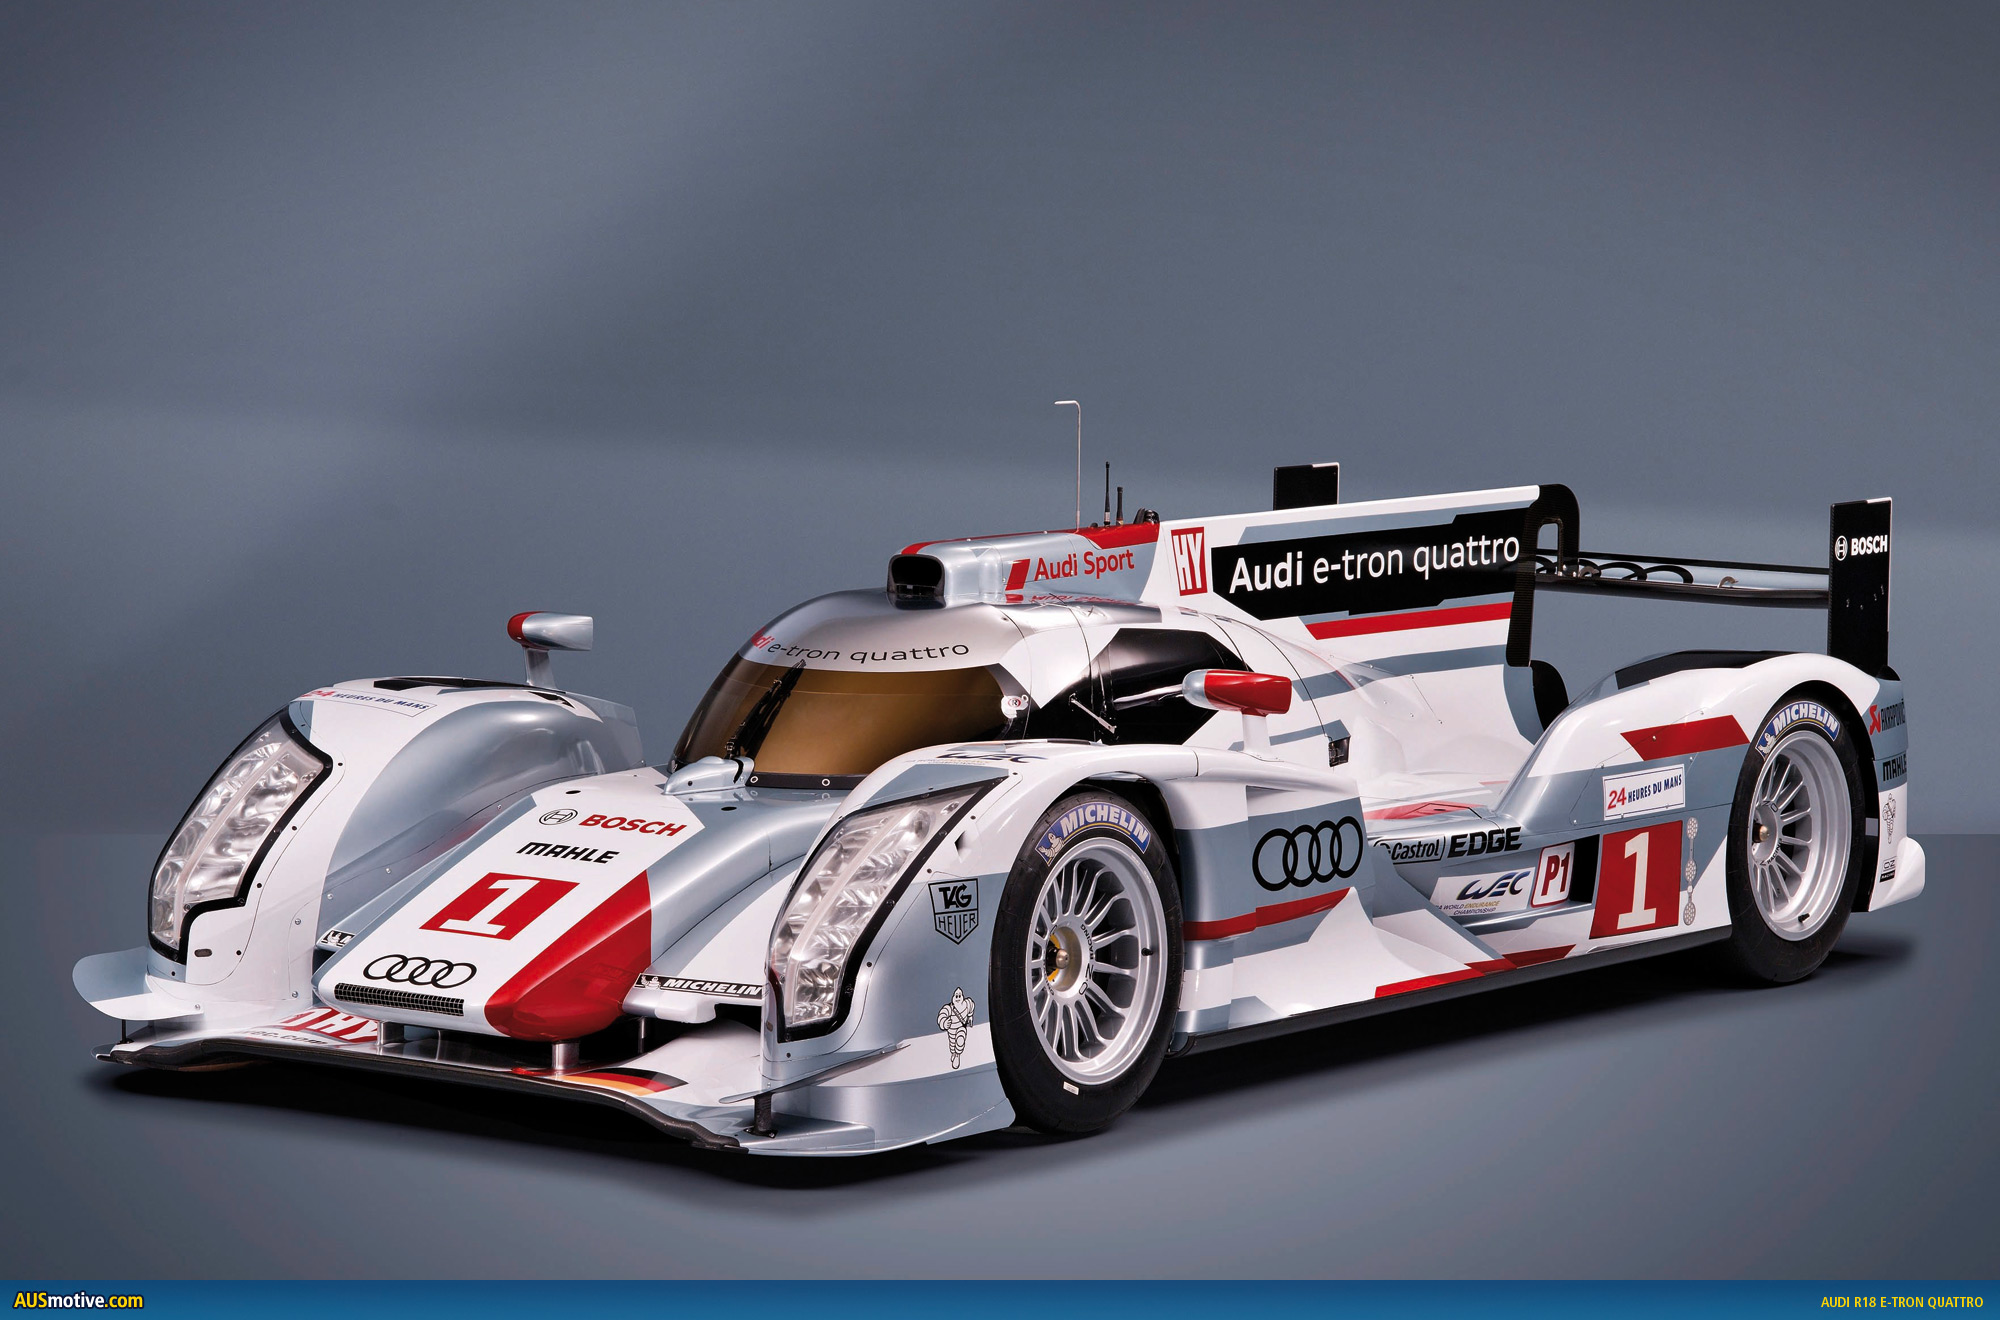 audi r18 e tron quattro photos and specs health tips. Black Bedroom Furniture Sets. Home Design Ideas